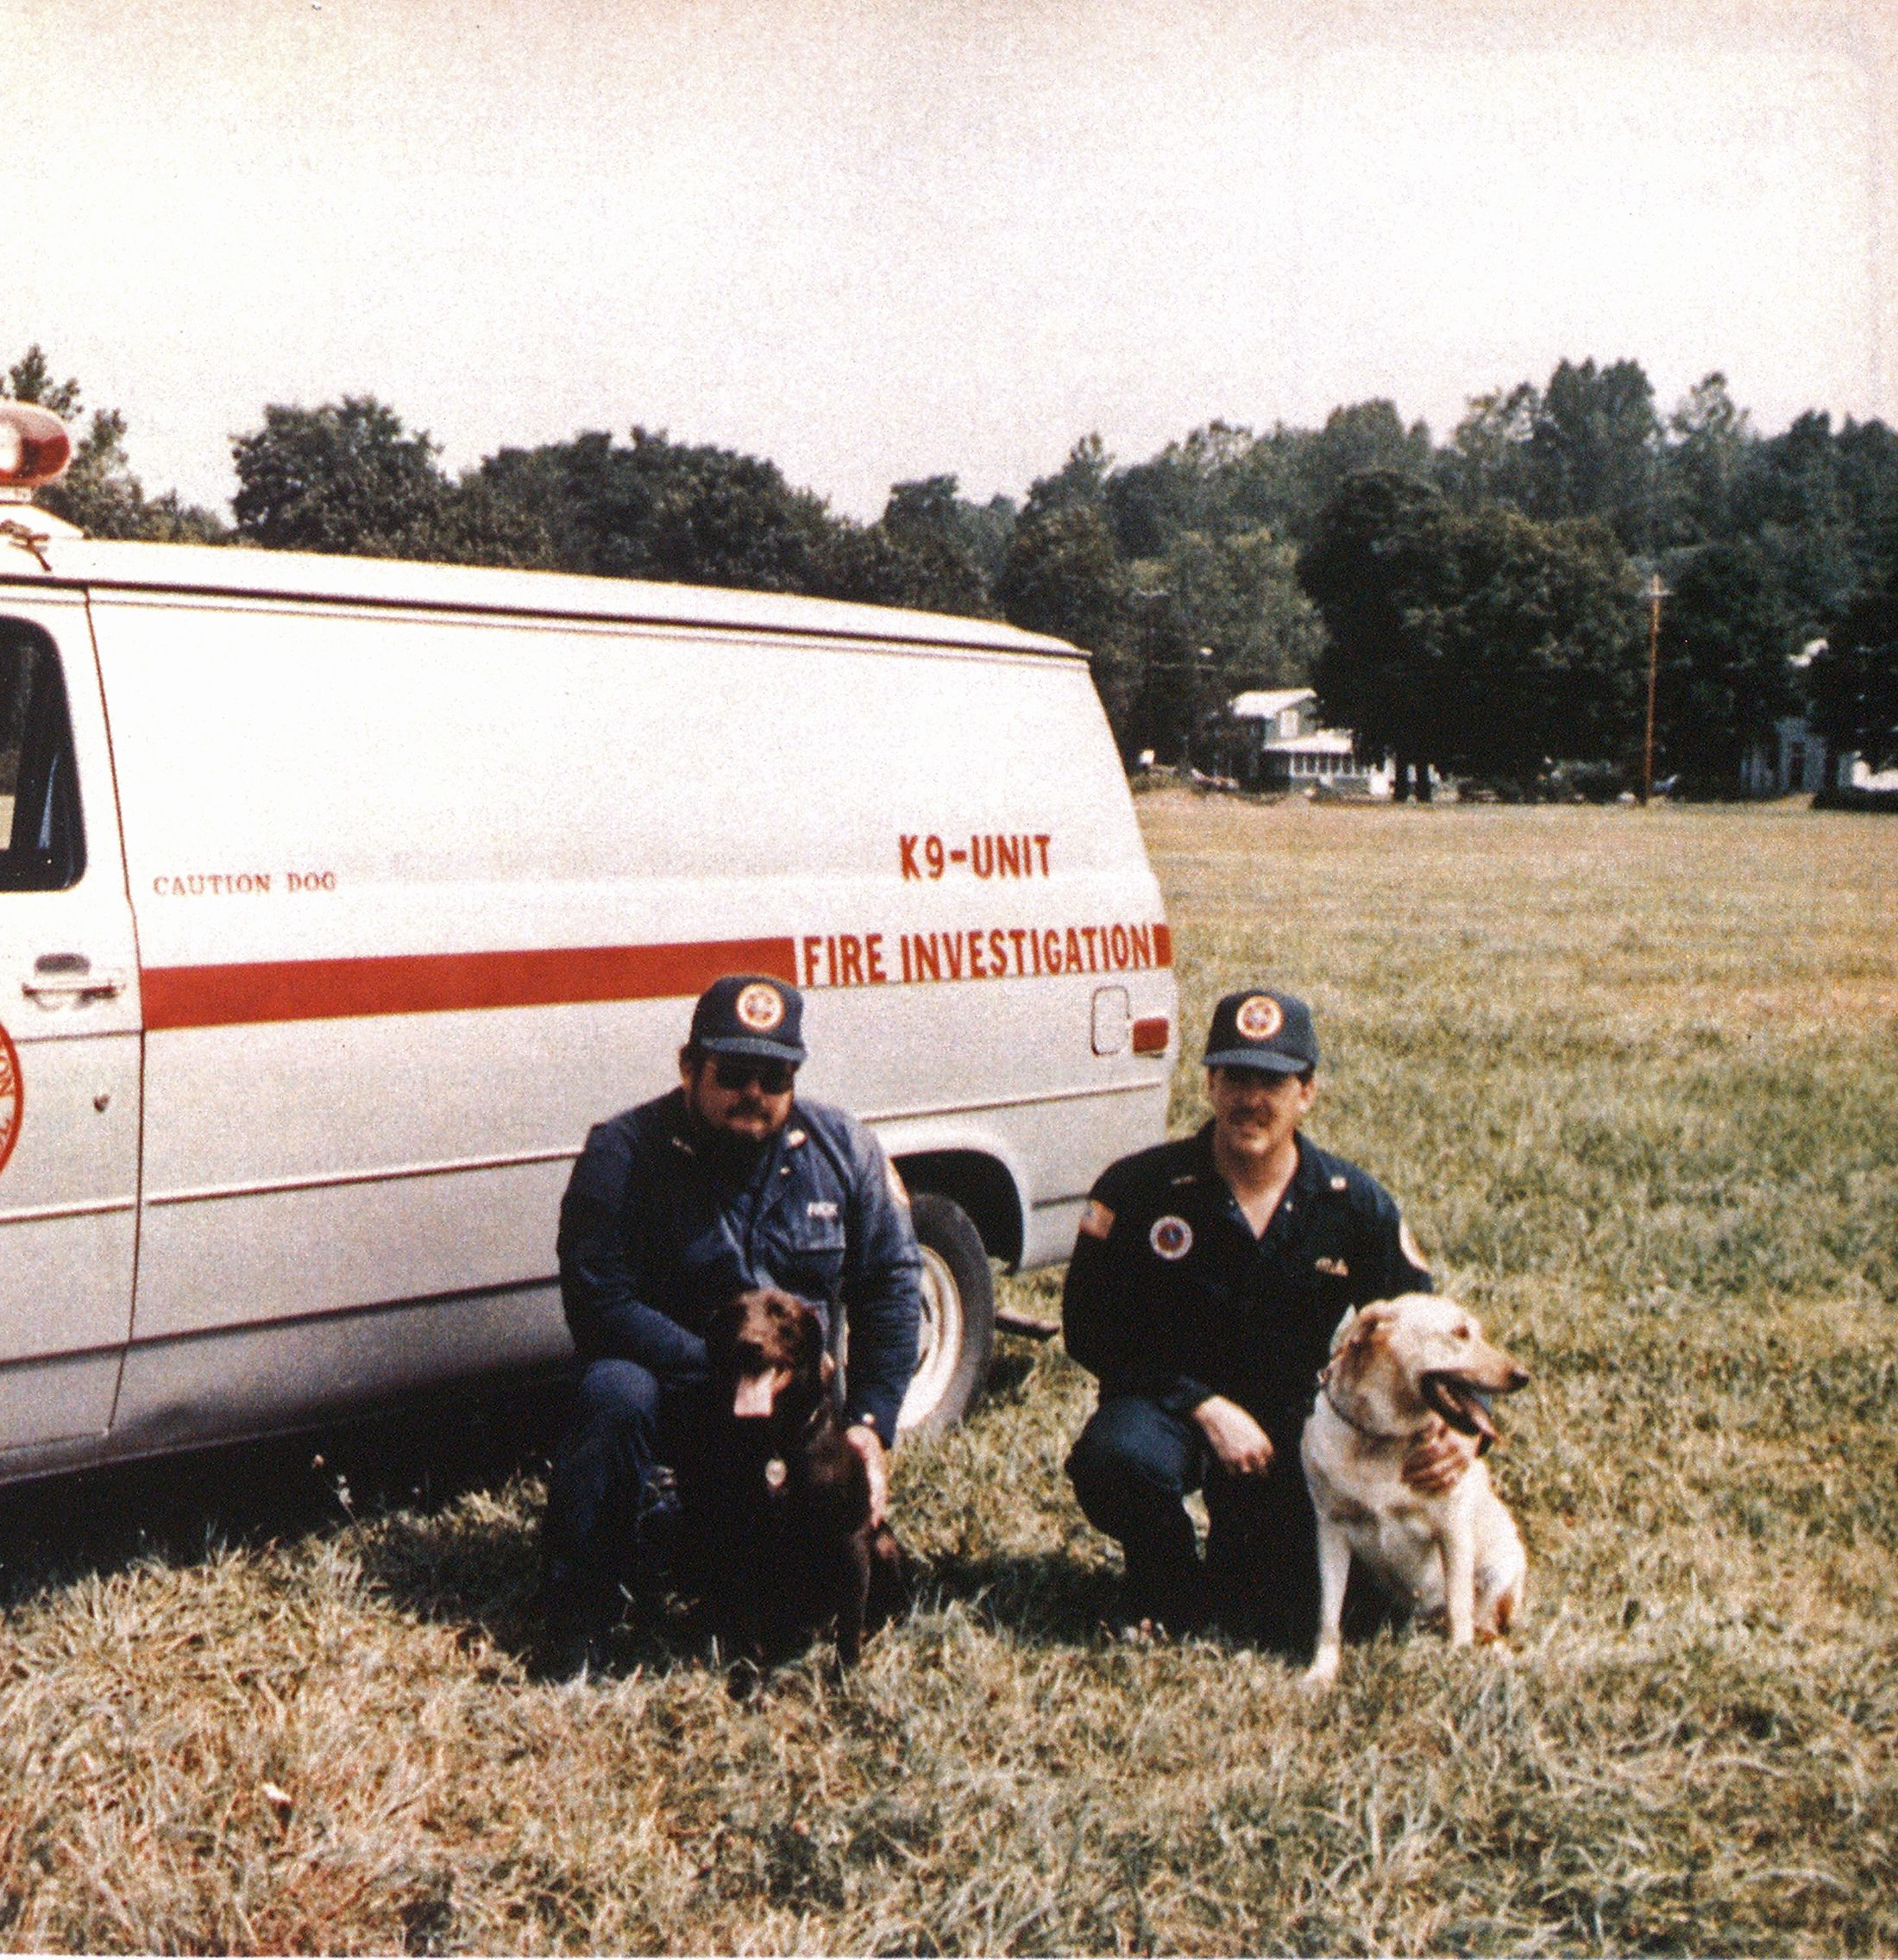 The investigator/canine teams of Richard Rogozinski and Hershey and Michael Knowlton and Buddy.